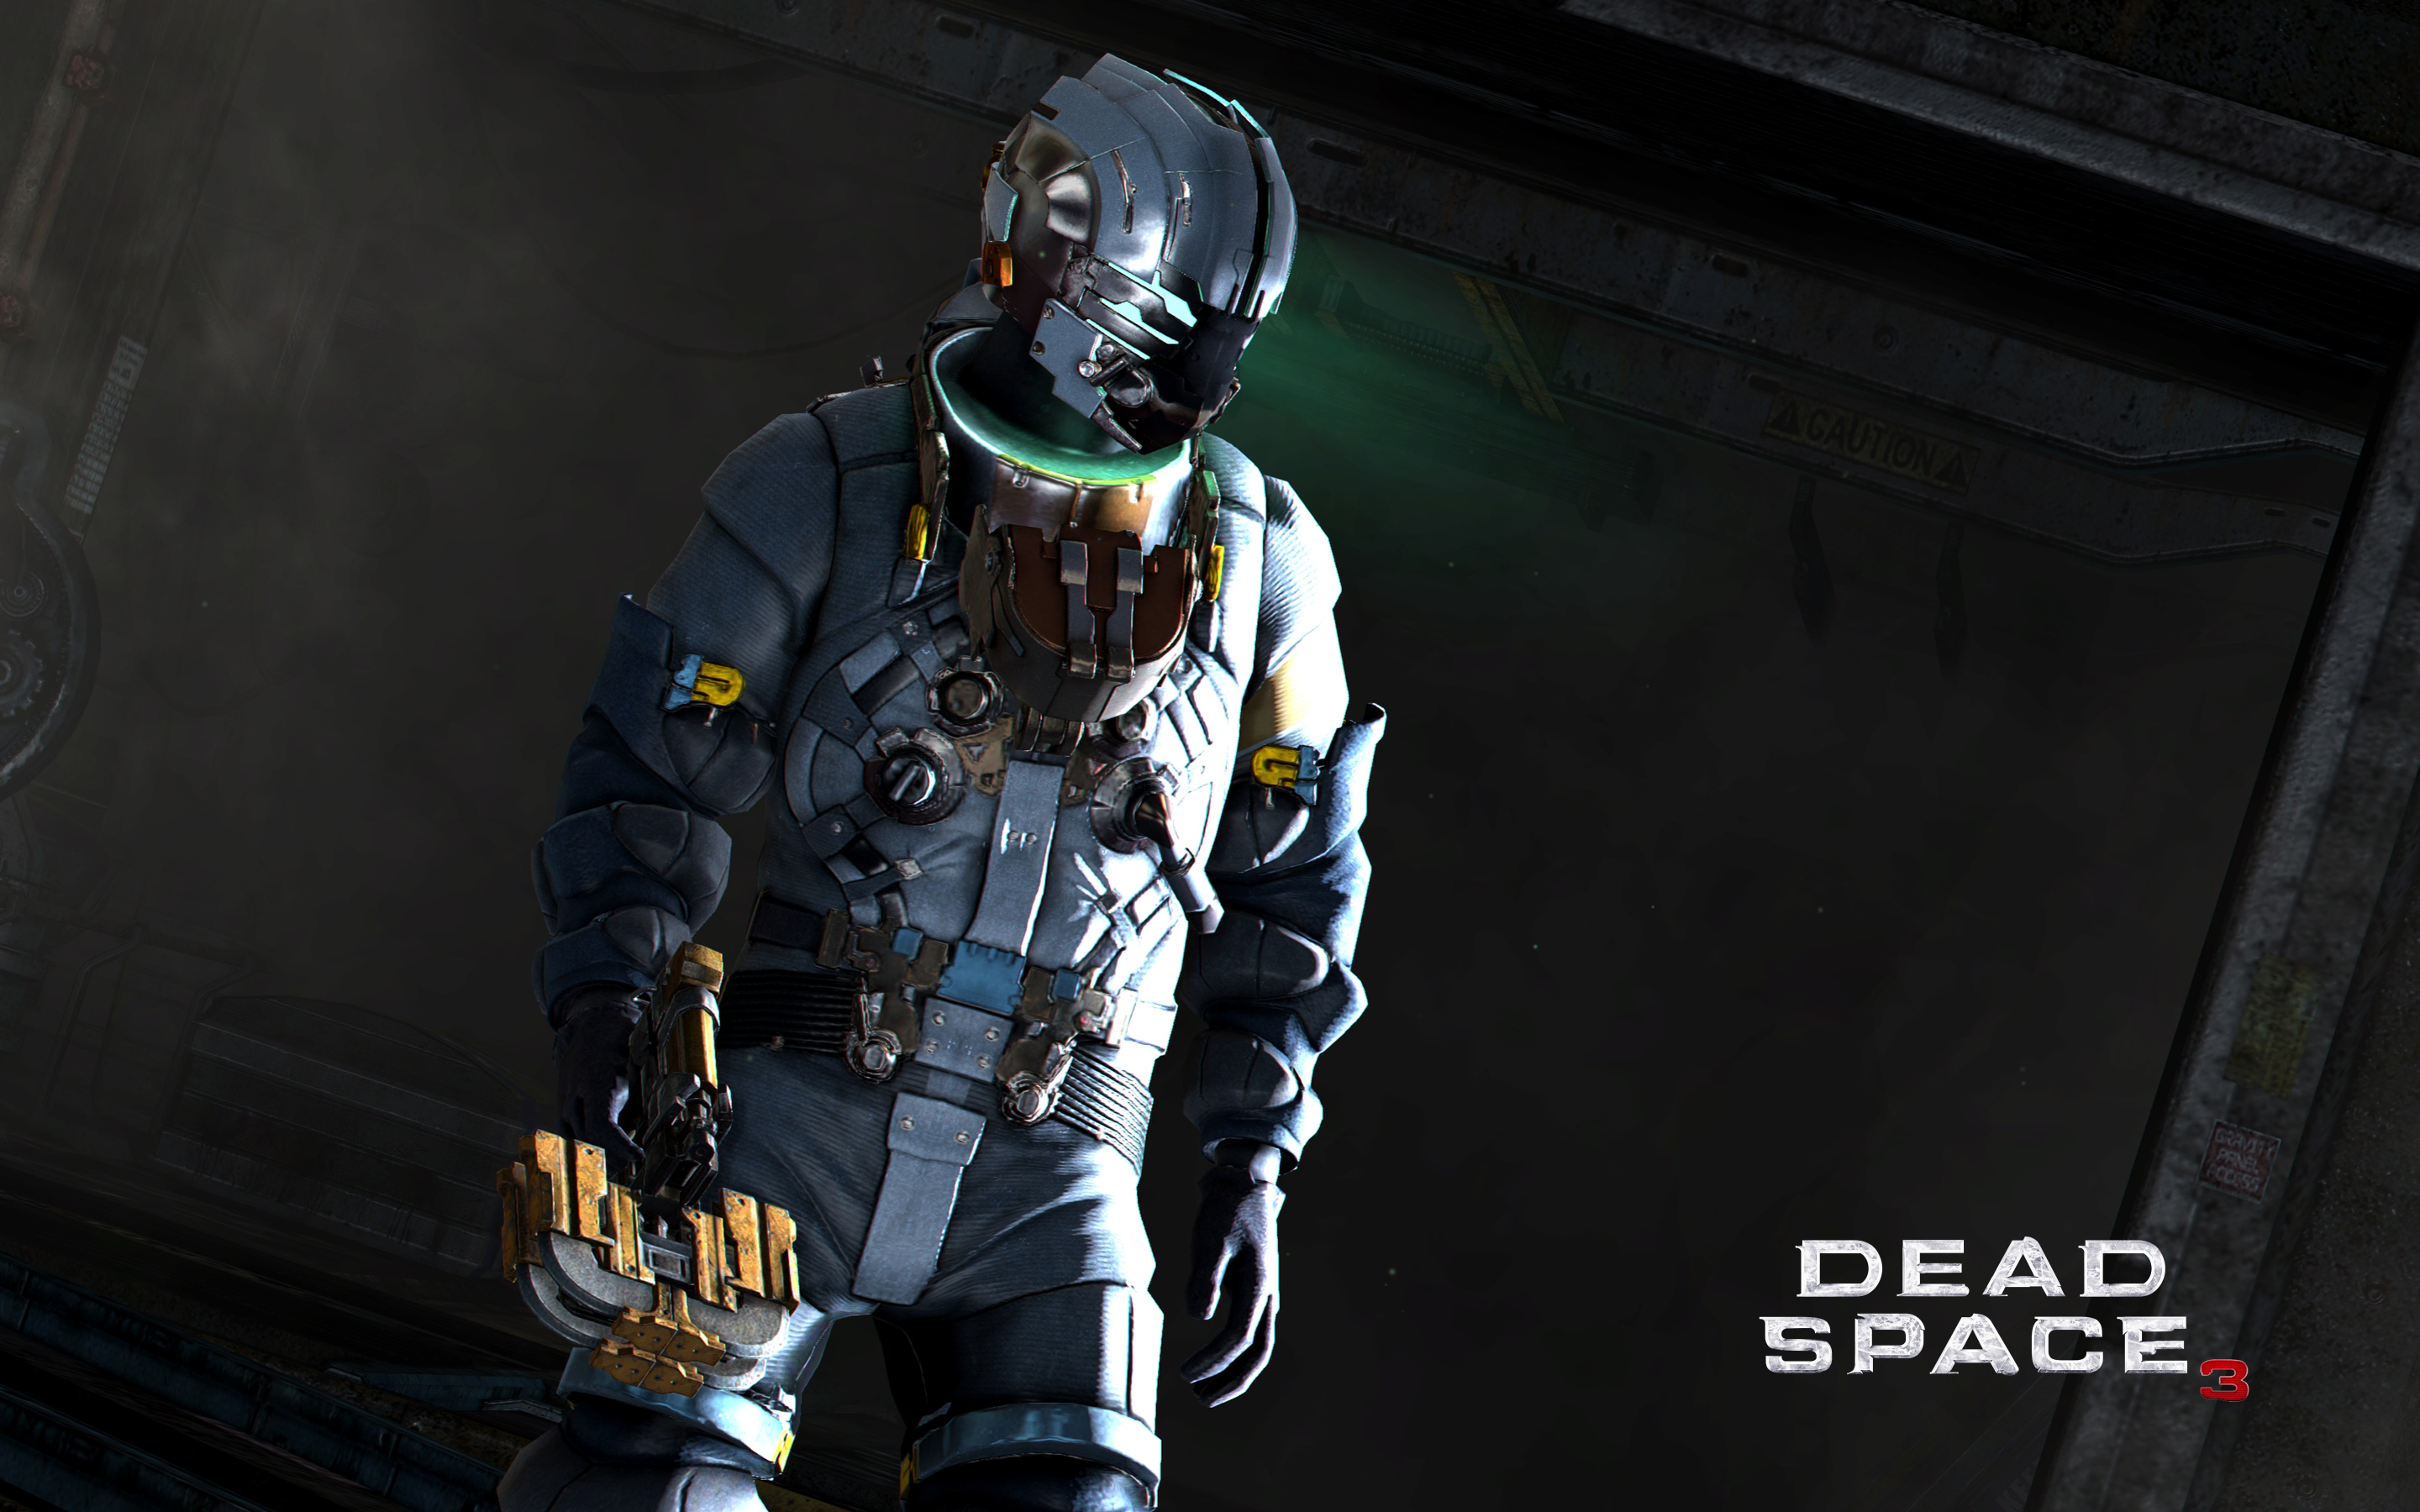 Dead Space 3 2013 493.22 Kb